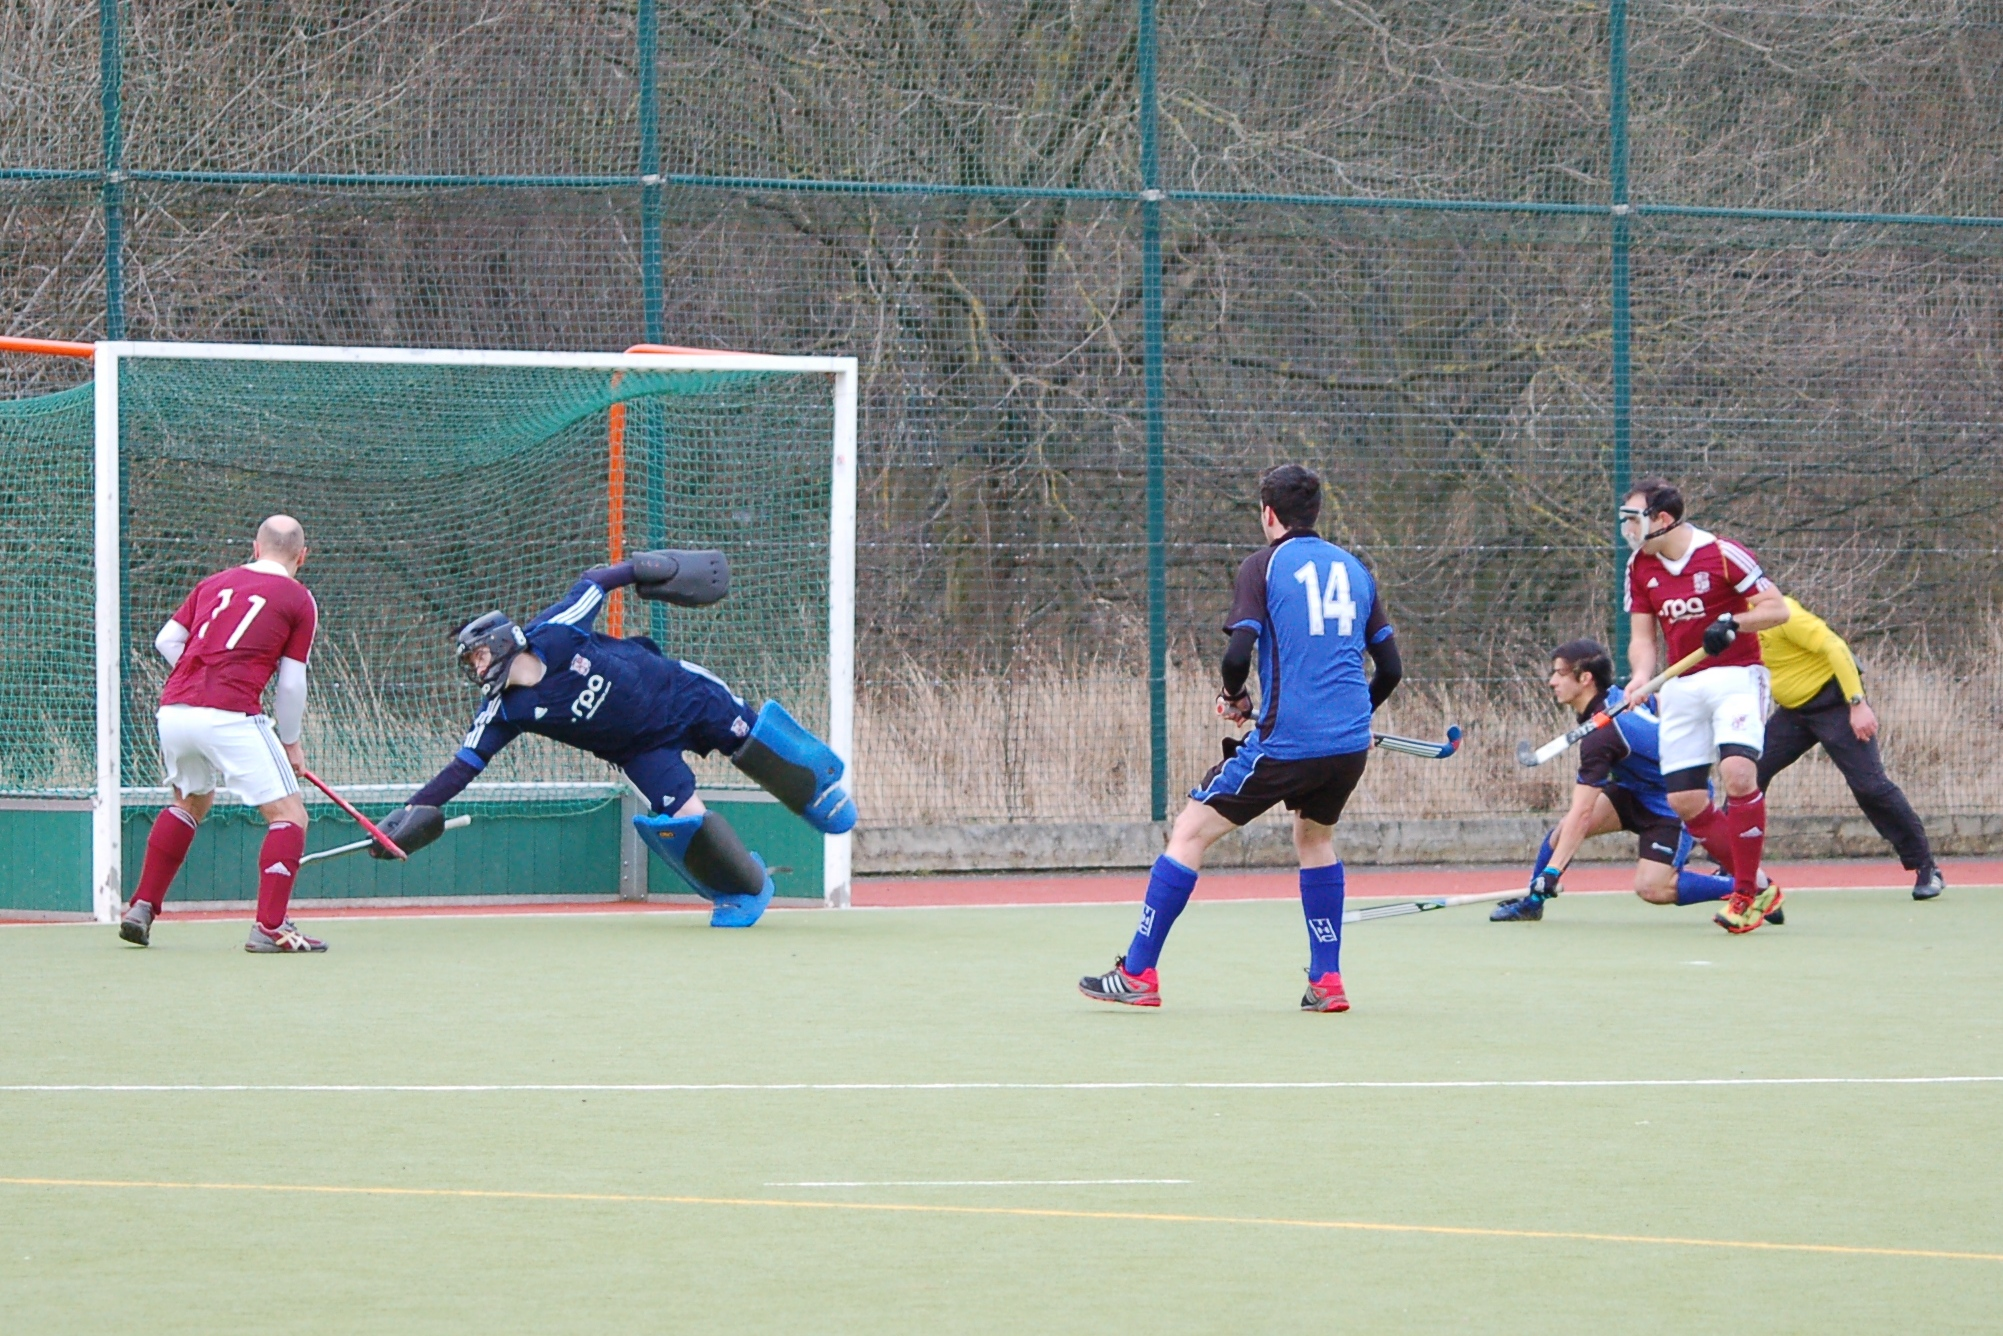 David Carter makes a save from a corner. Picture: Kirsty McMillan